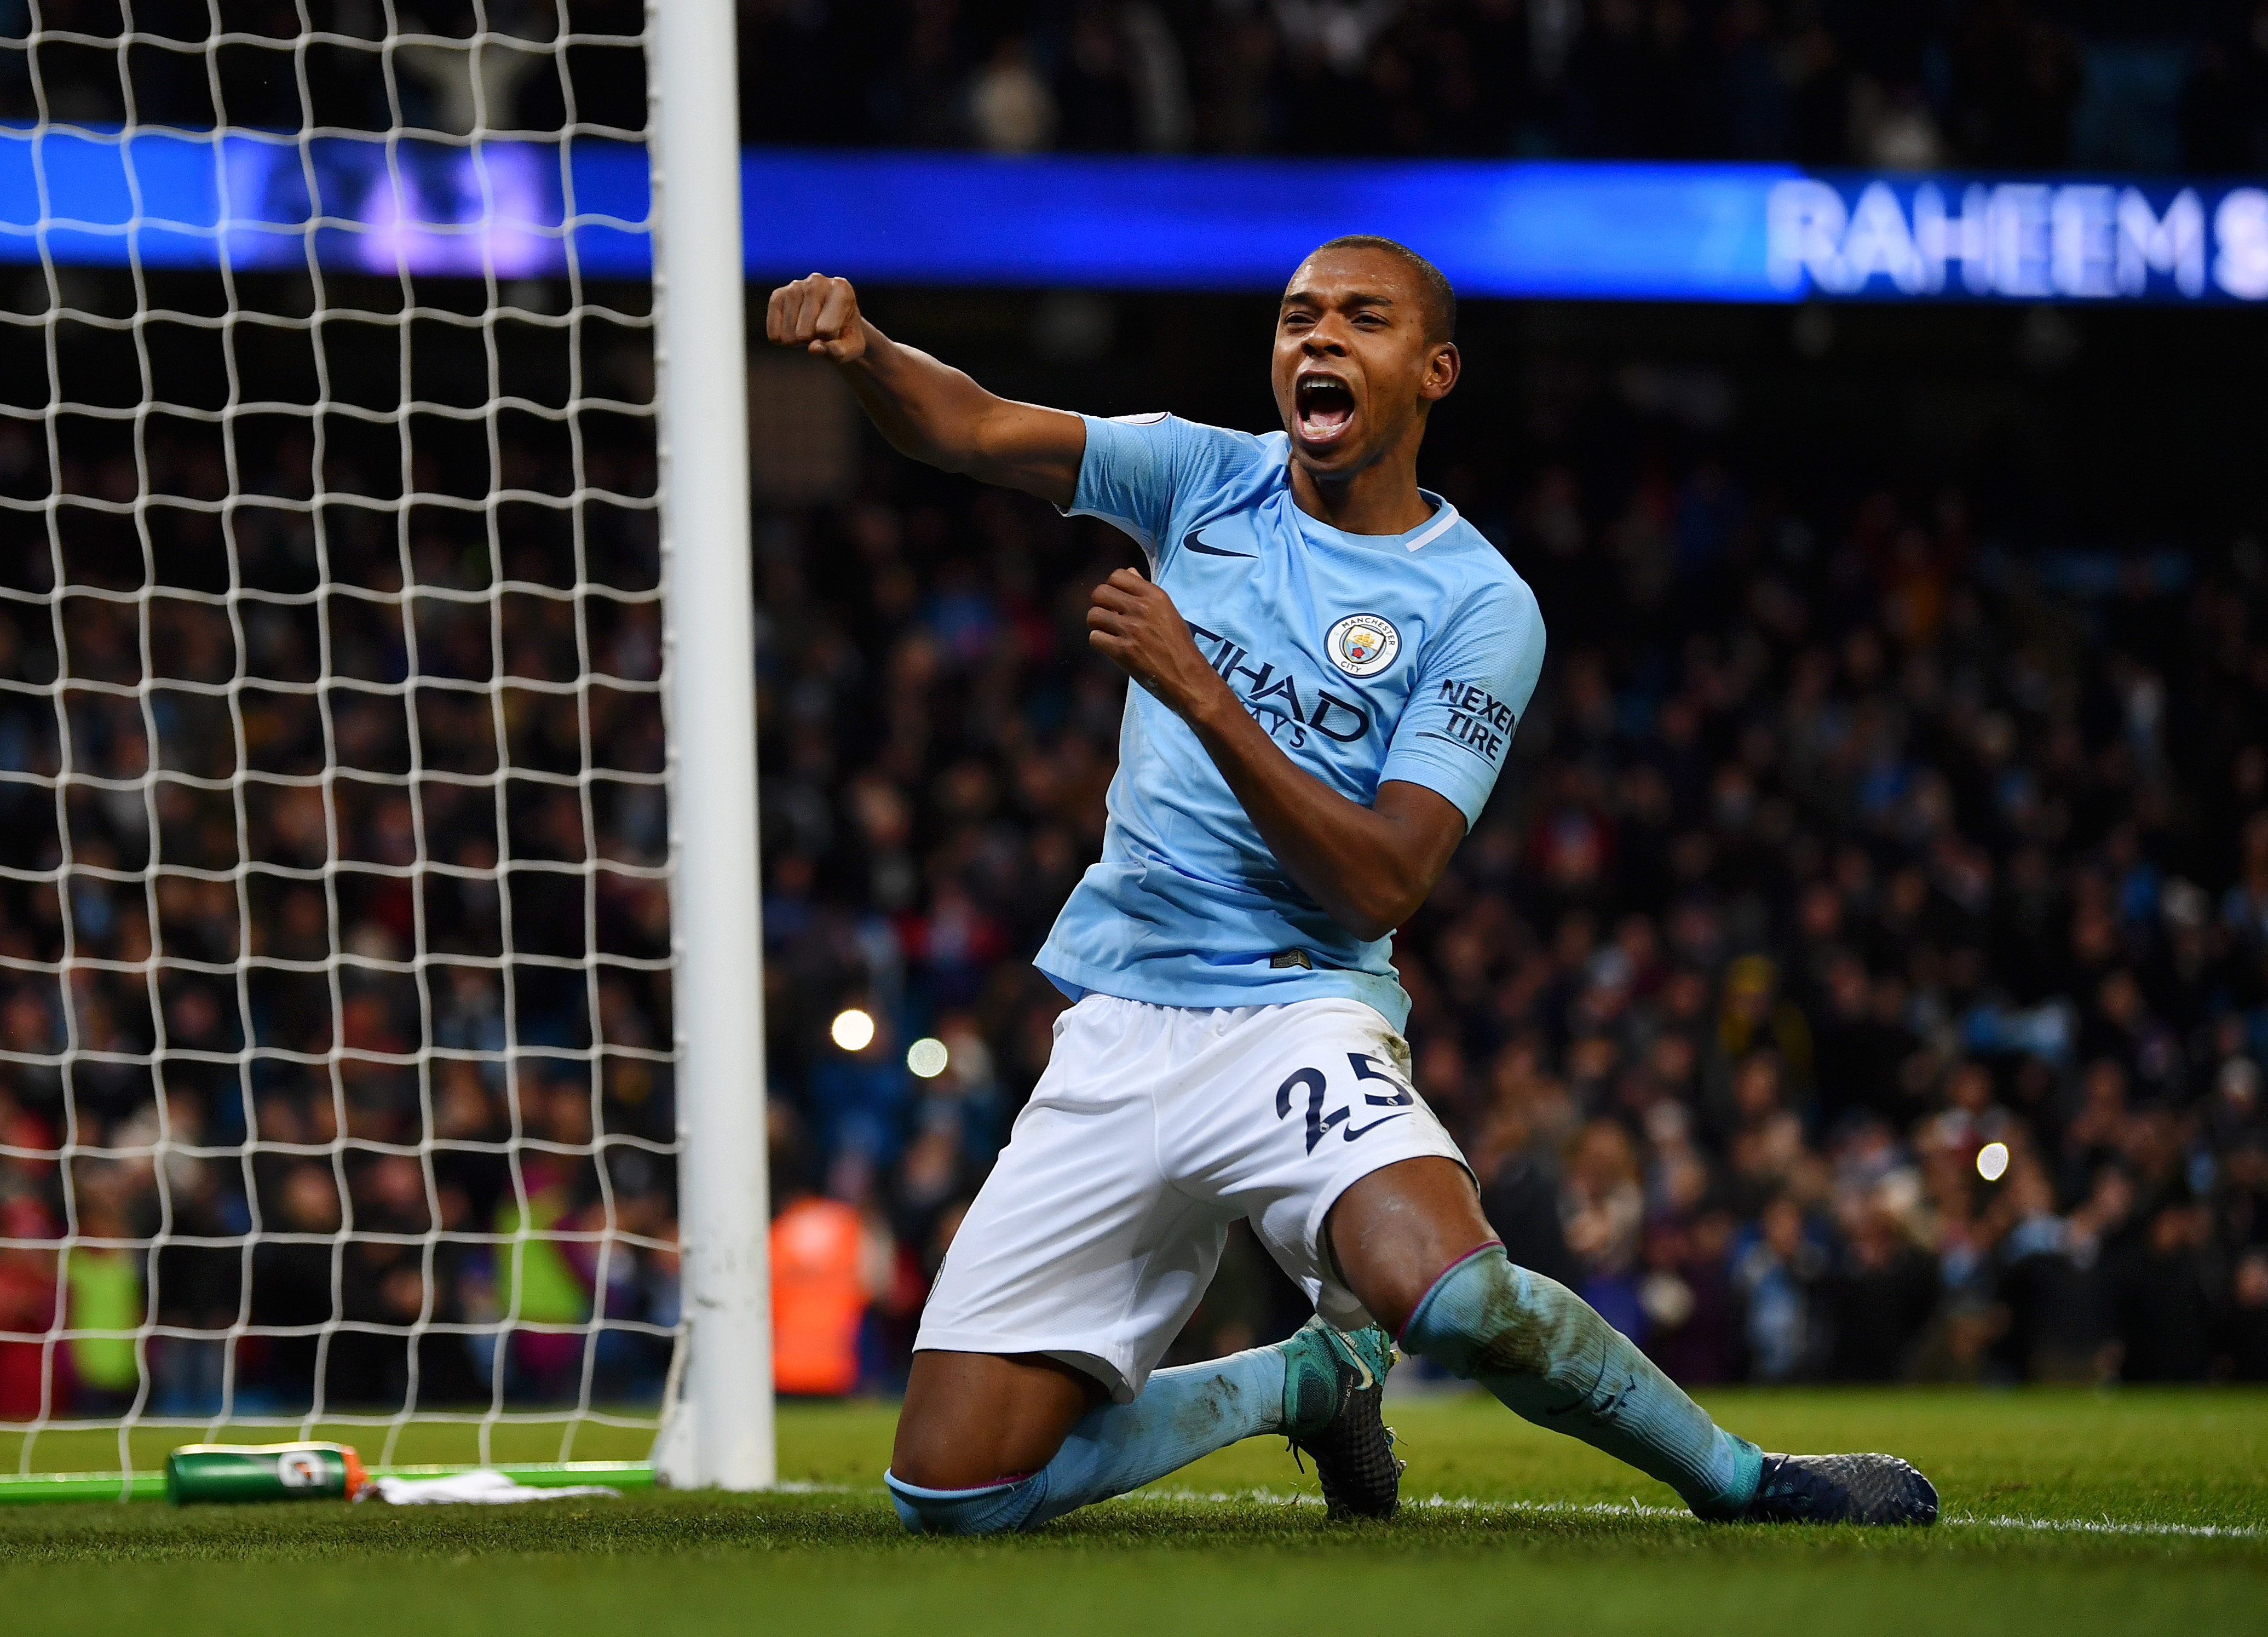 Manchester City midfielder Fernandinho signs two-year contract extension